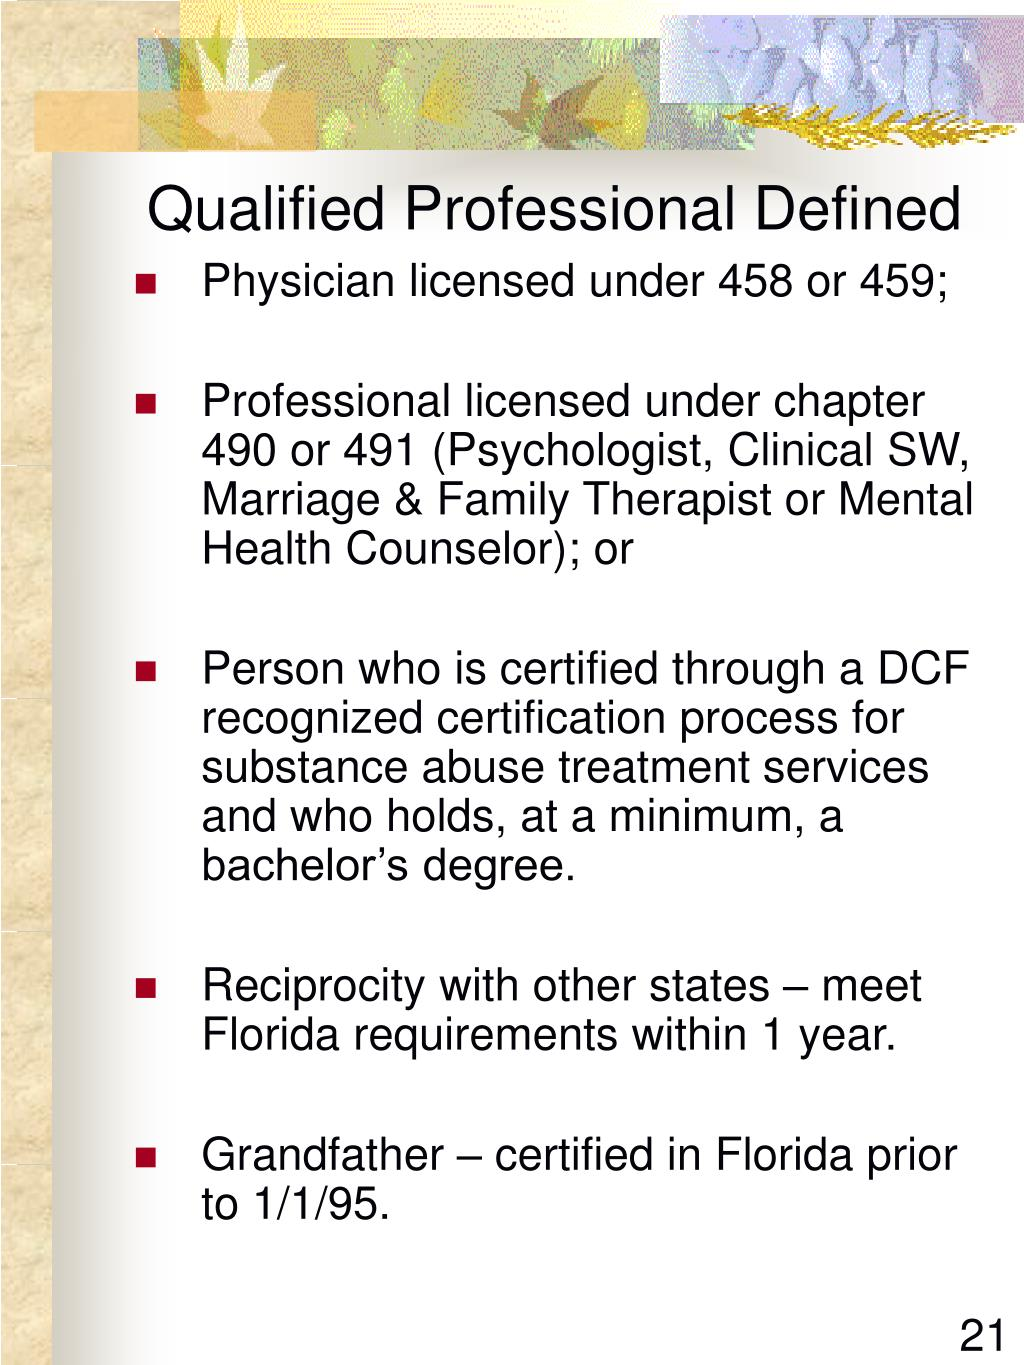 Qualified Professional Defined